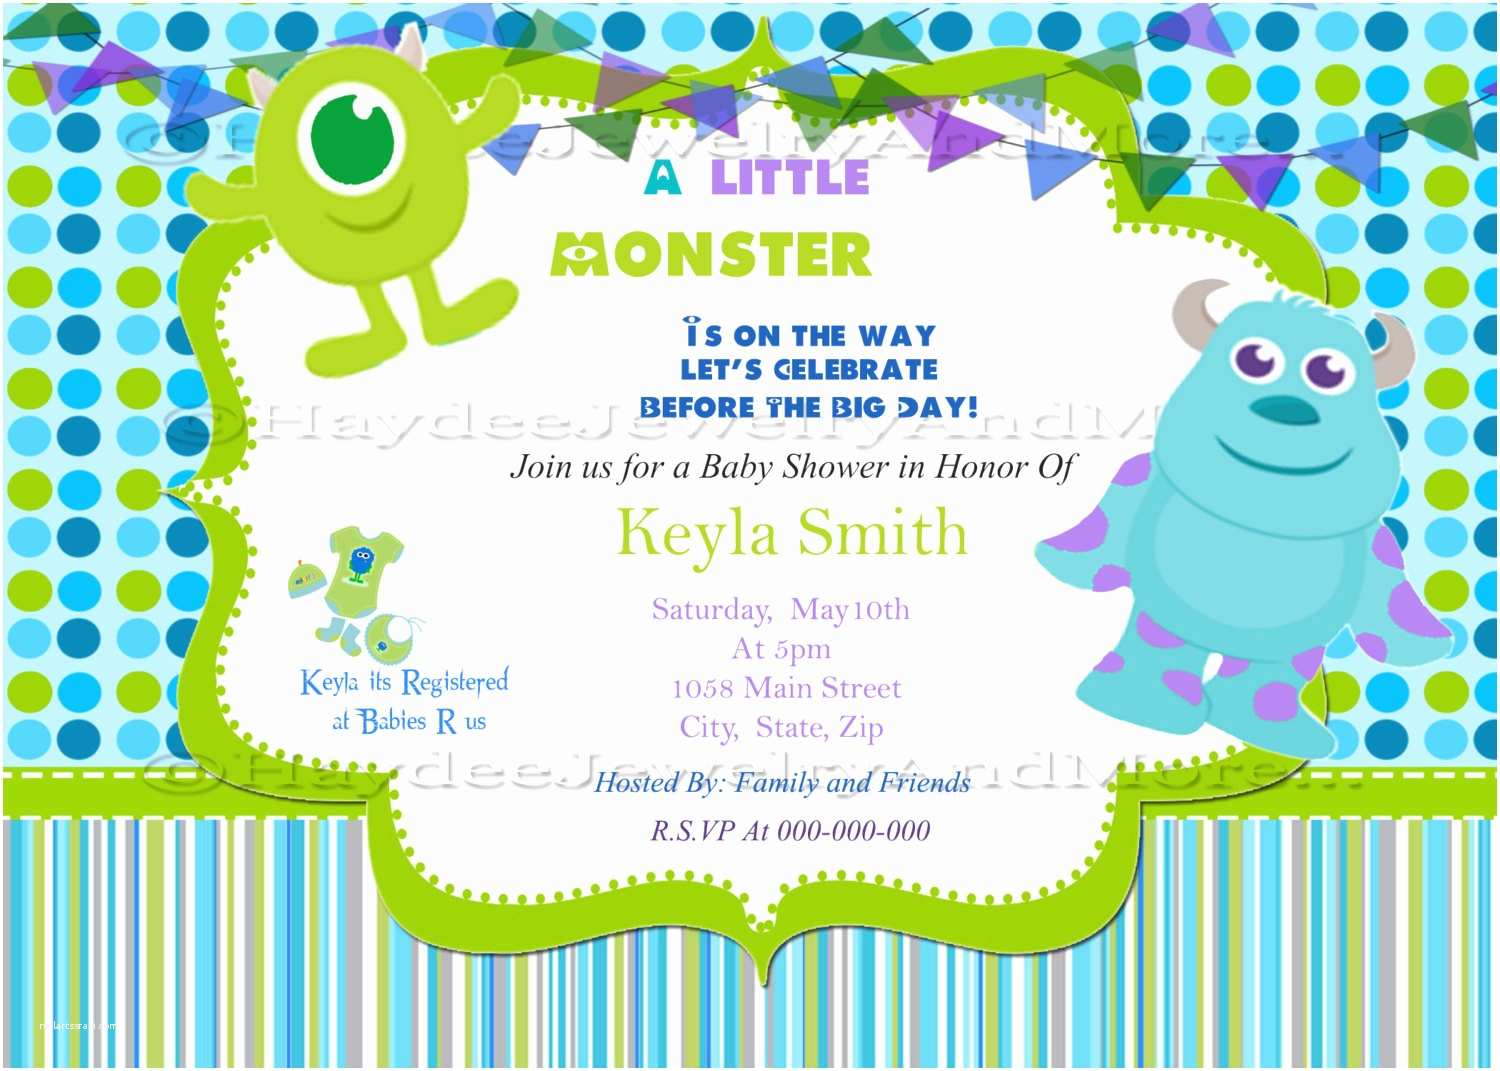 Monsters Inc Baby Shower Invitations Monster Inc Baby Shower Invitation Water Bottle Labels